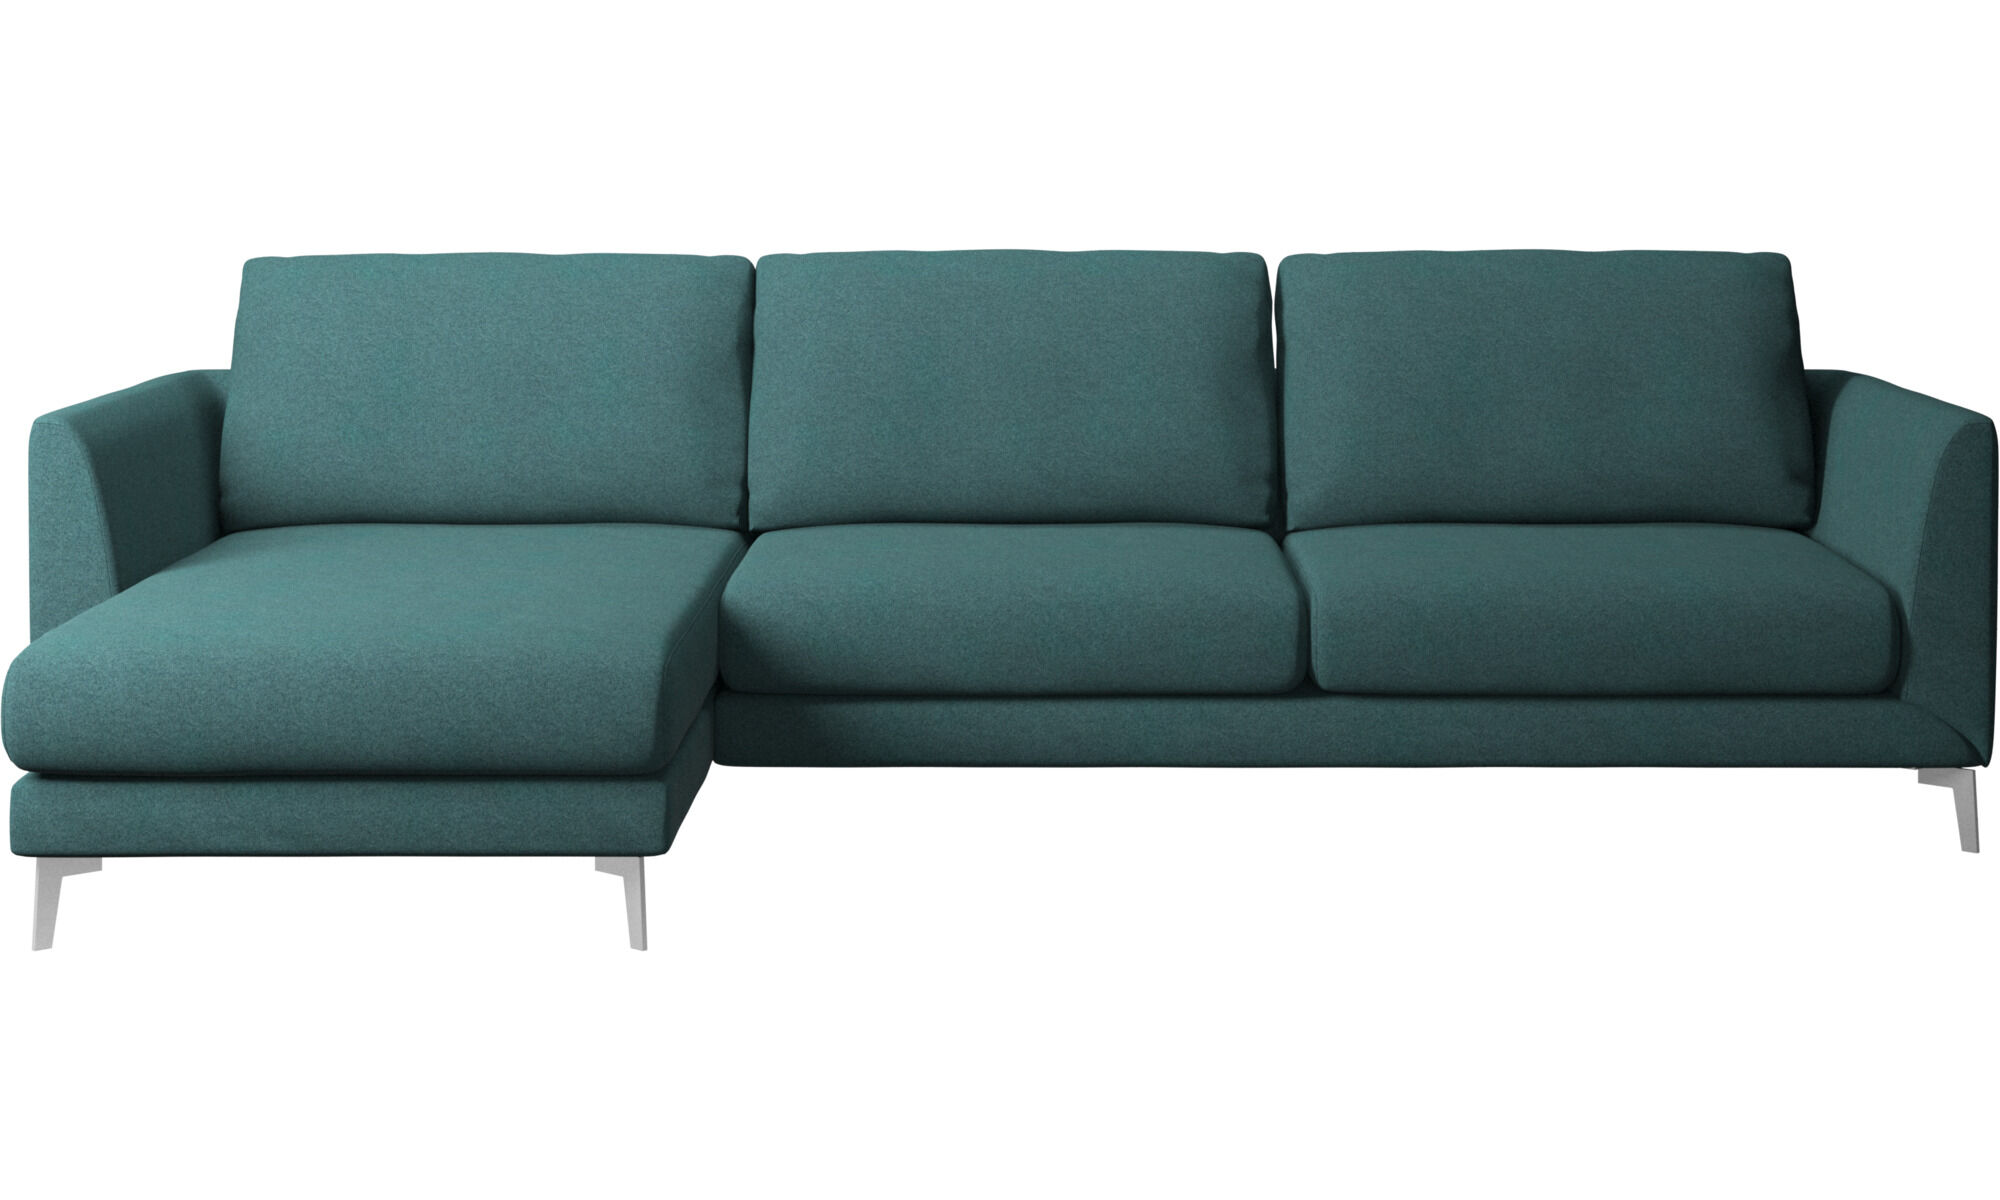 Ordinaire Chaise Lounge Sofas   Fargo Sofa With Resting Unit   Green   Fabric ...